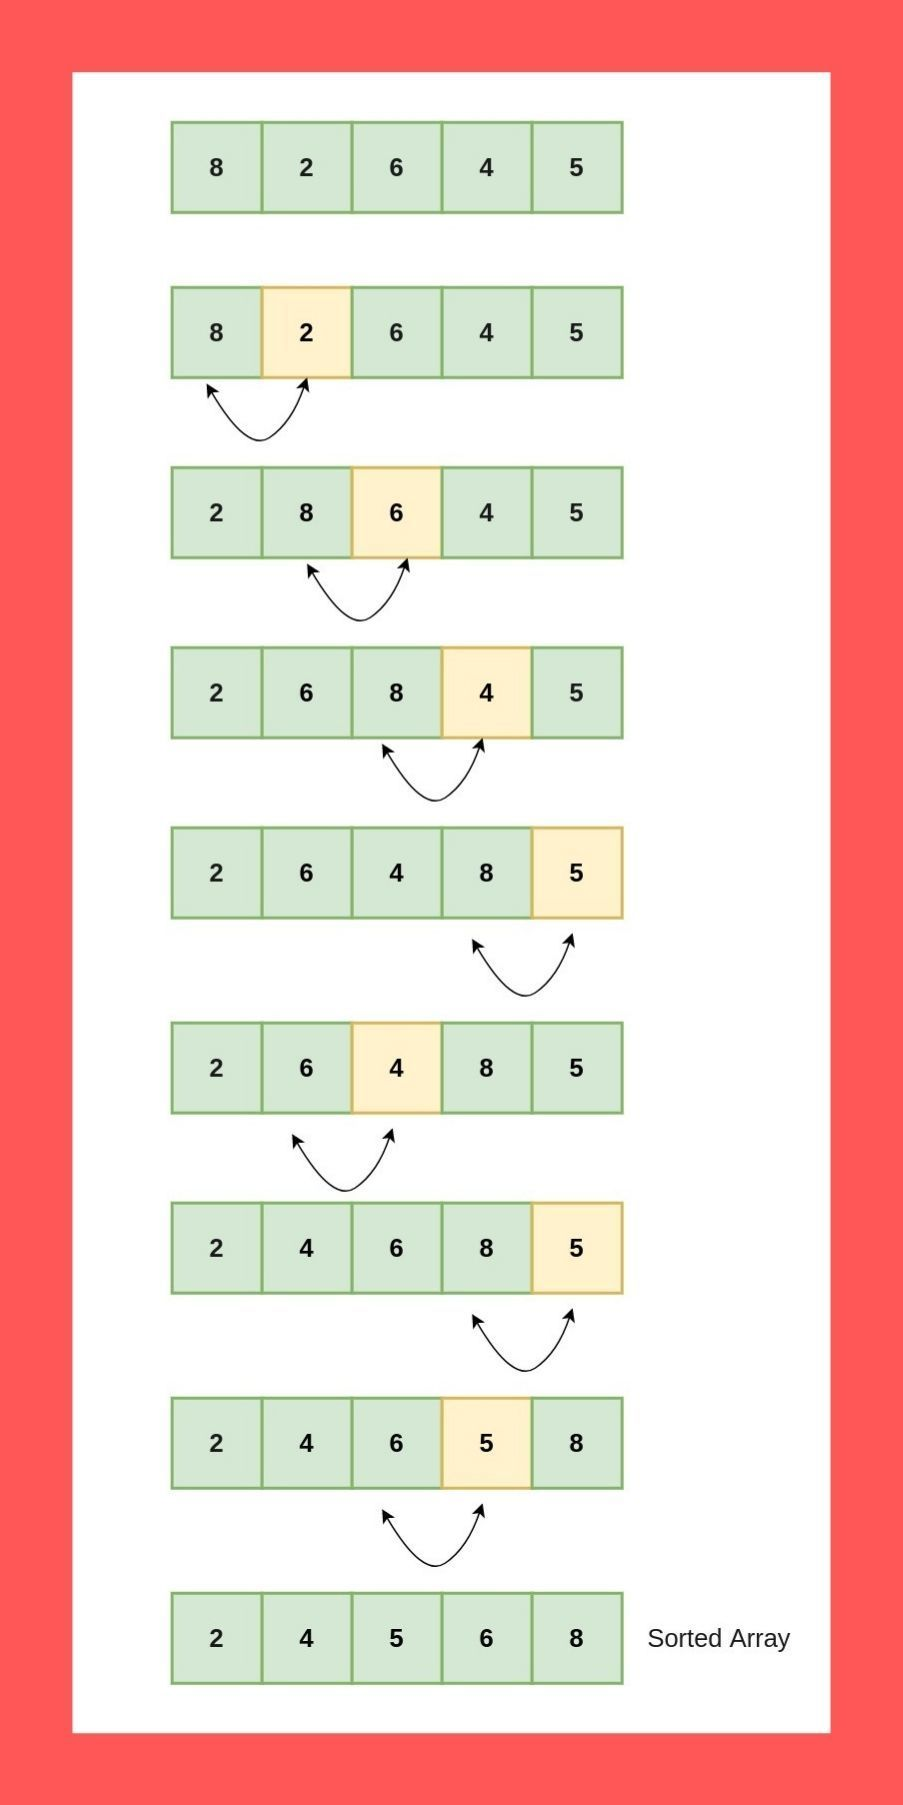 Bubble Sorting in Python